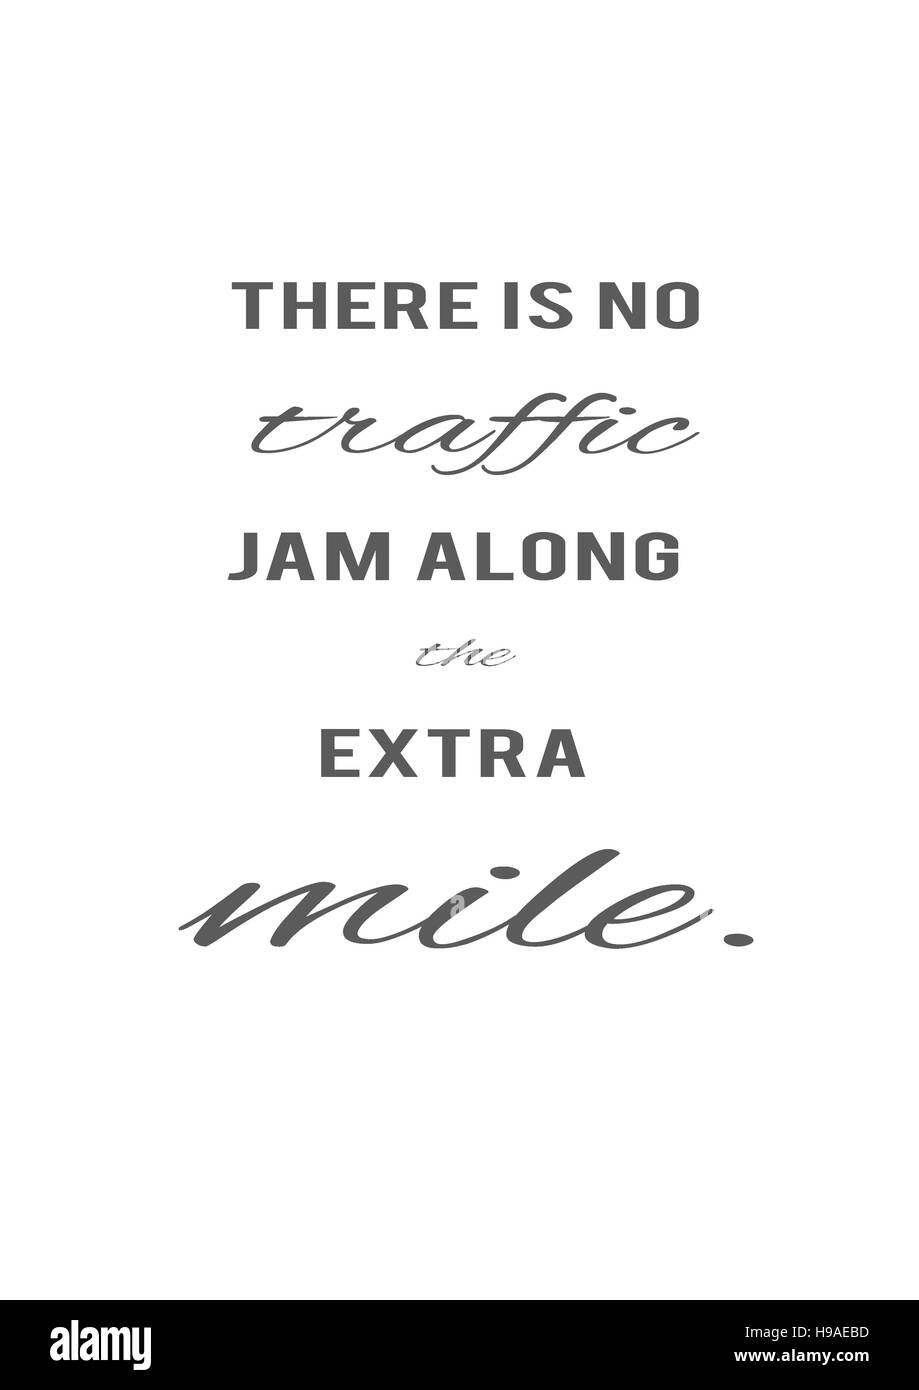 'There is no traffic jam along the extra mile.' Motivation, poster, quotes, black letters, white background, - Stock Image